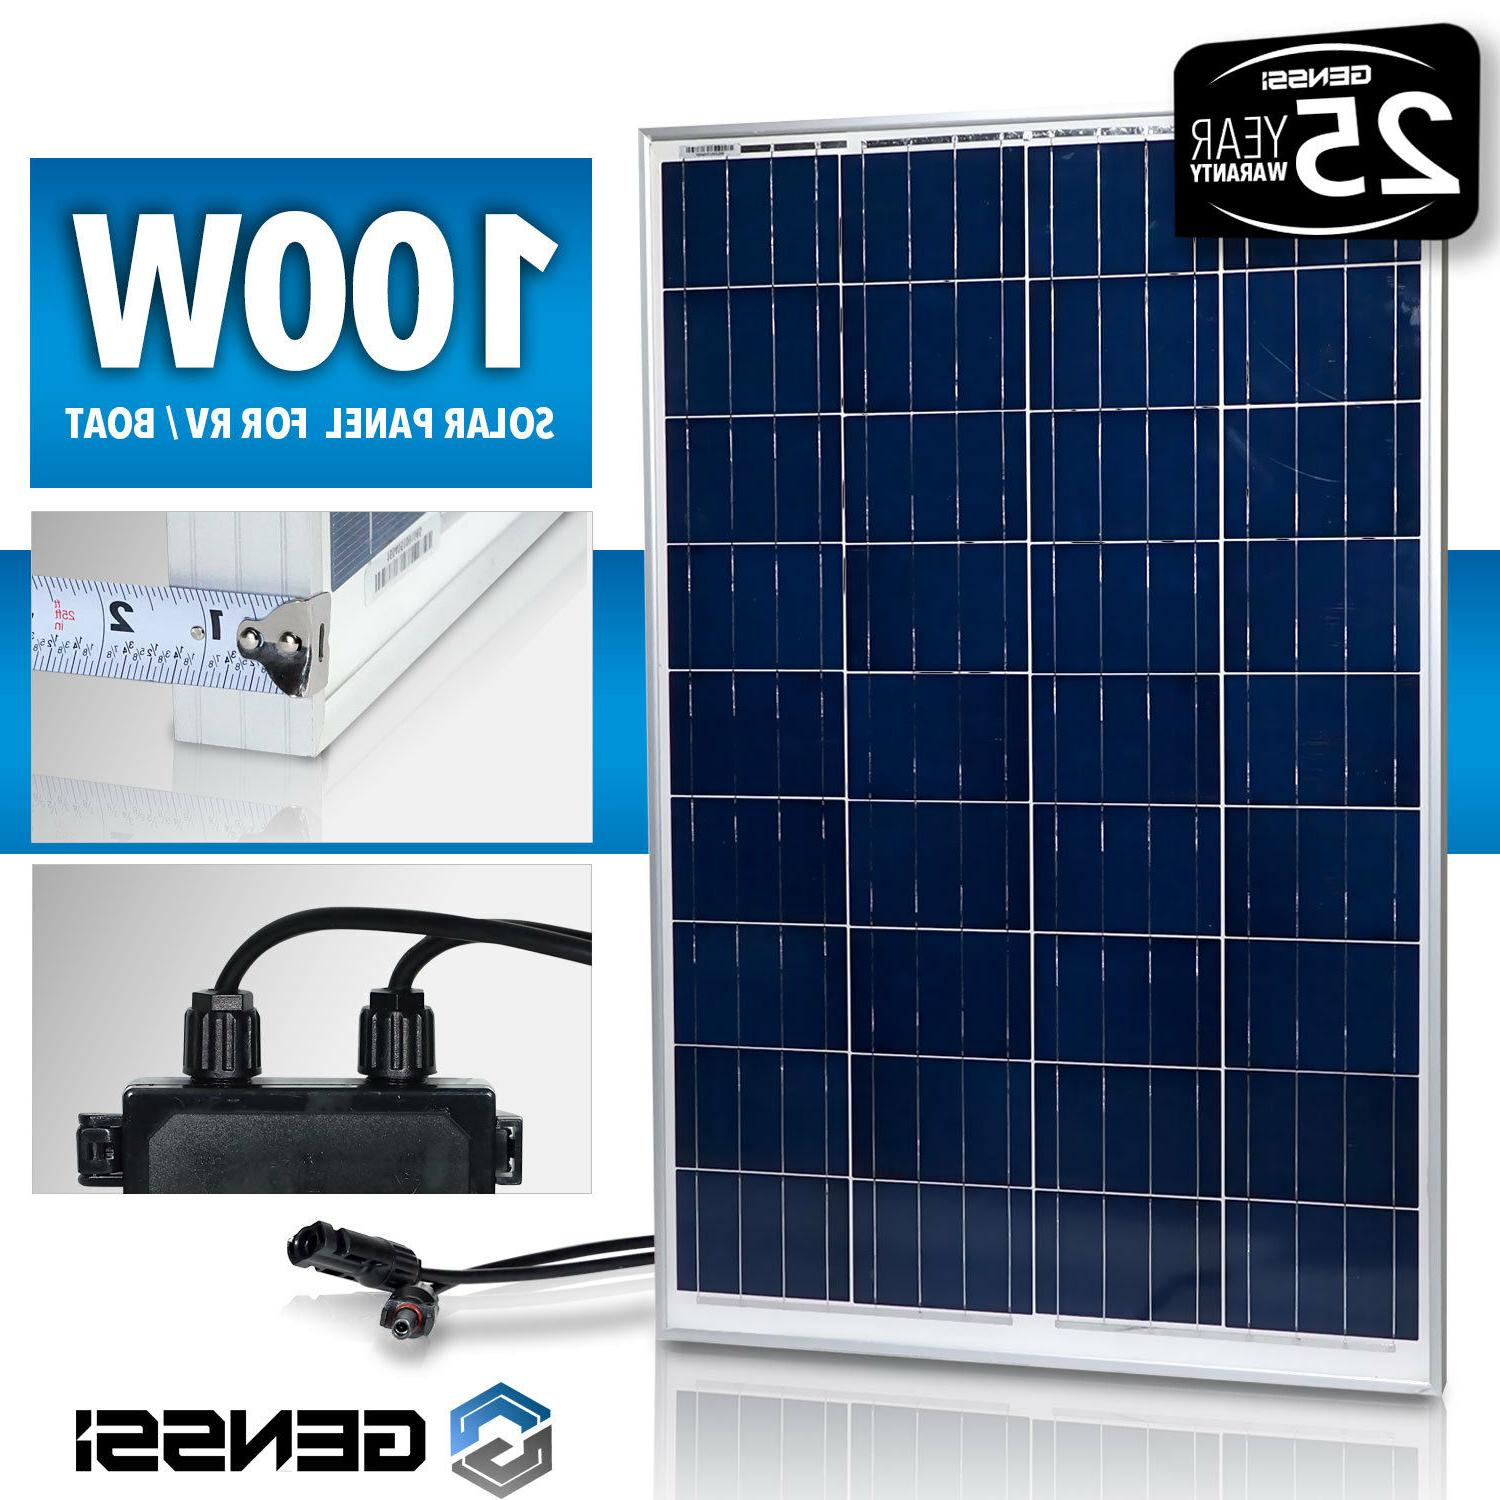 GENSSI Solar Panel Kit pcs 100W 12V with Charge